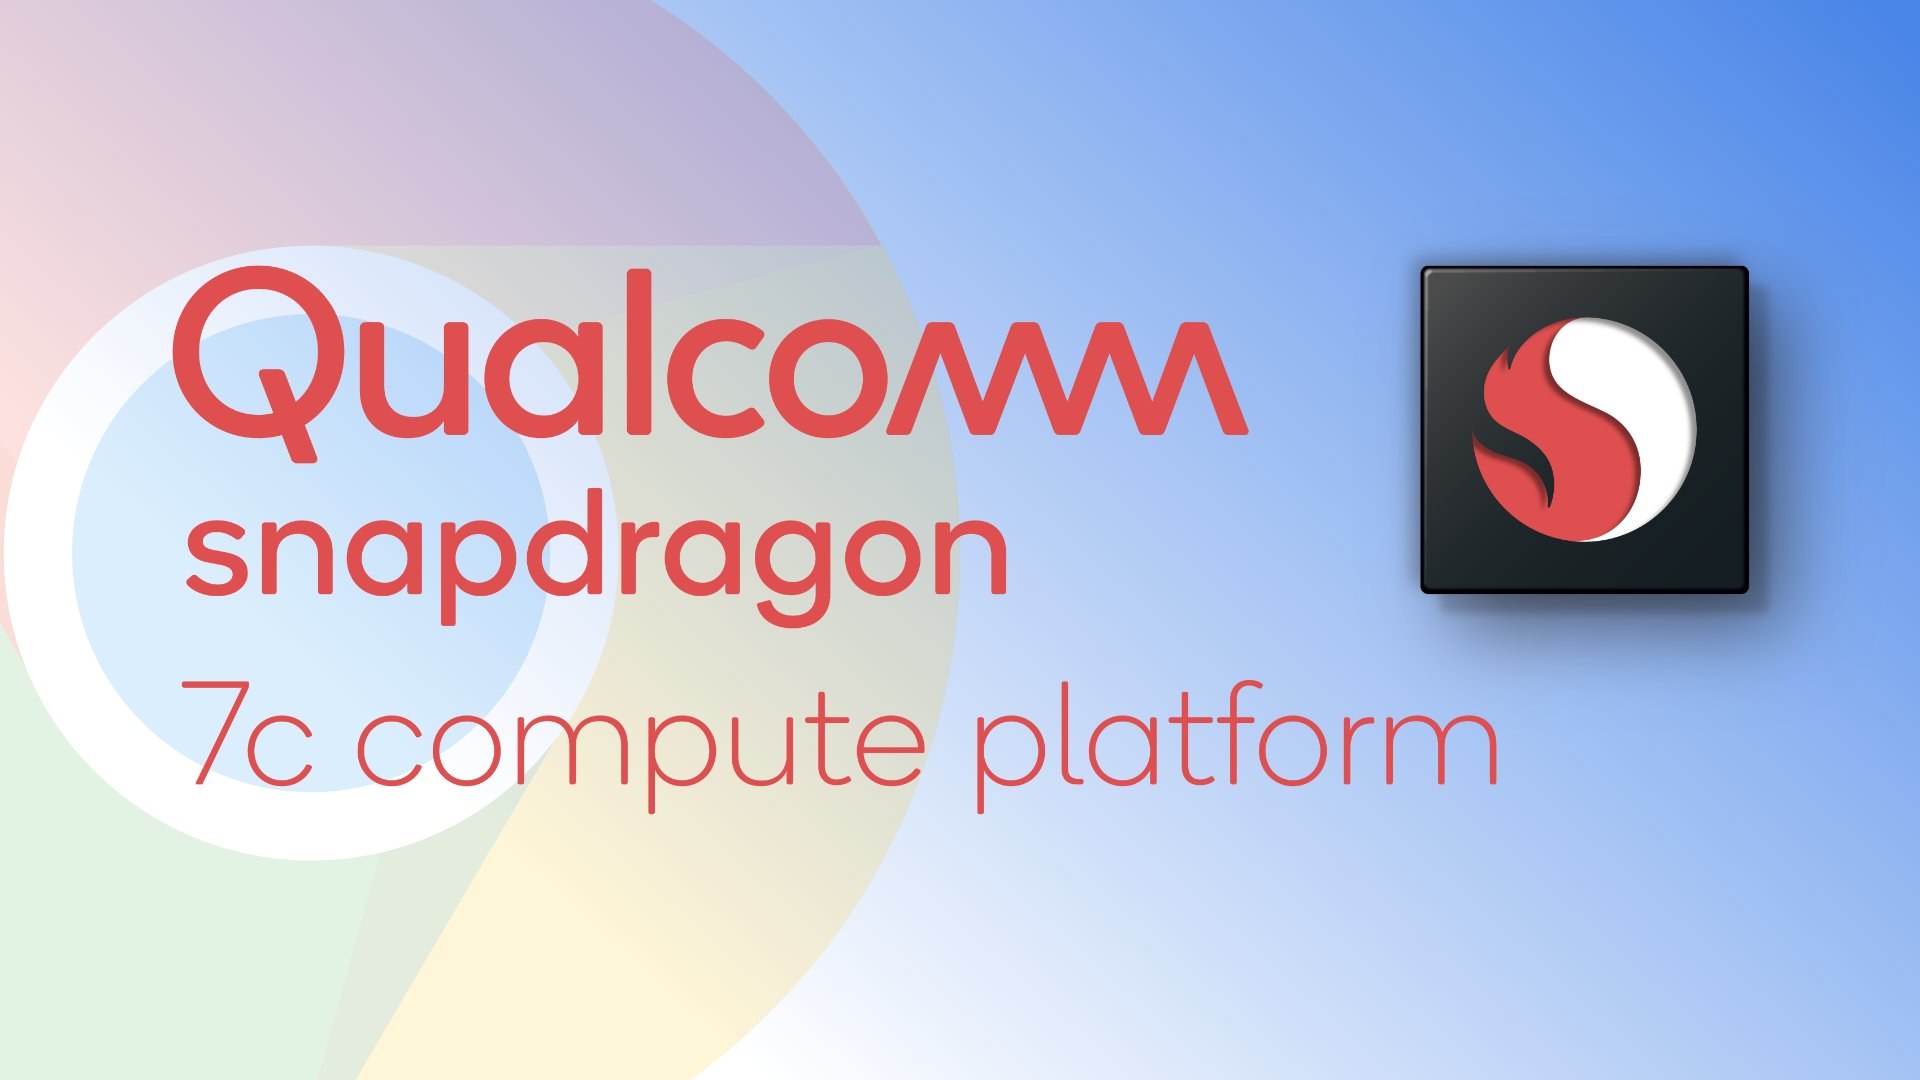 A new 5nm Snapdragon 7c with 5G is coming and already being tested for Chromebooks